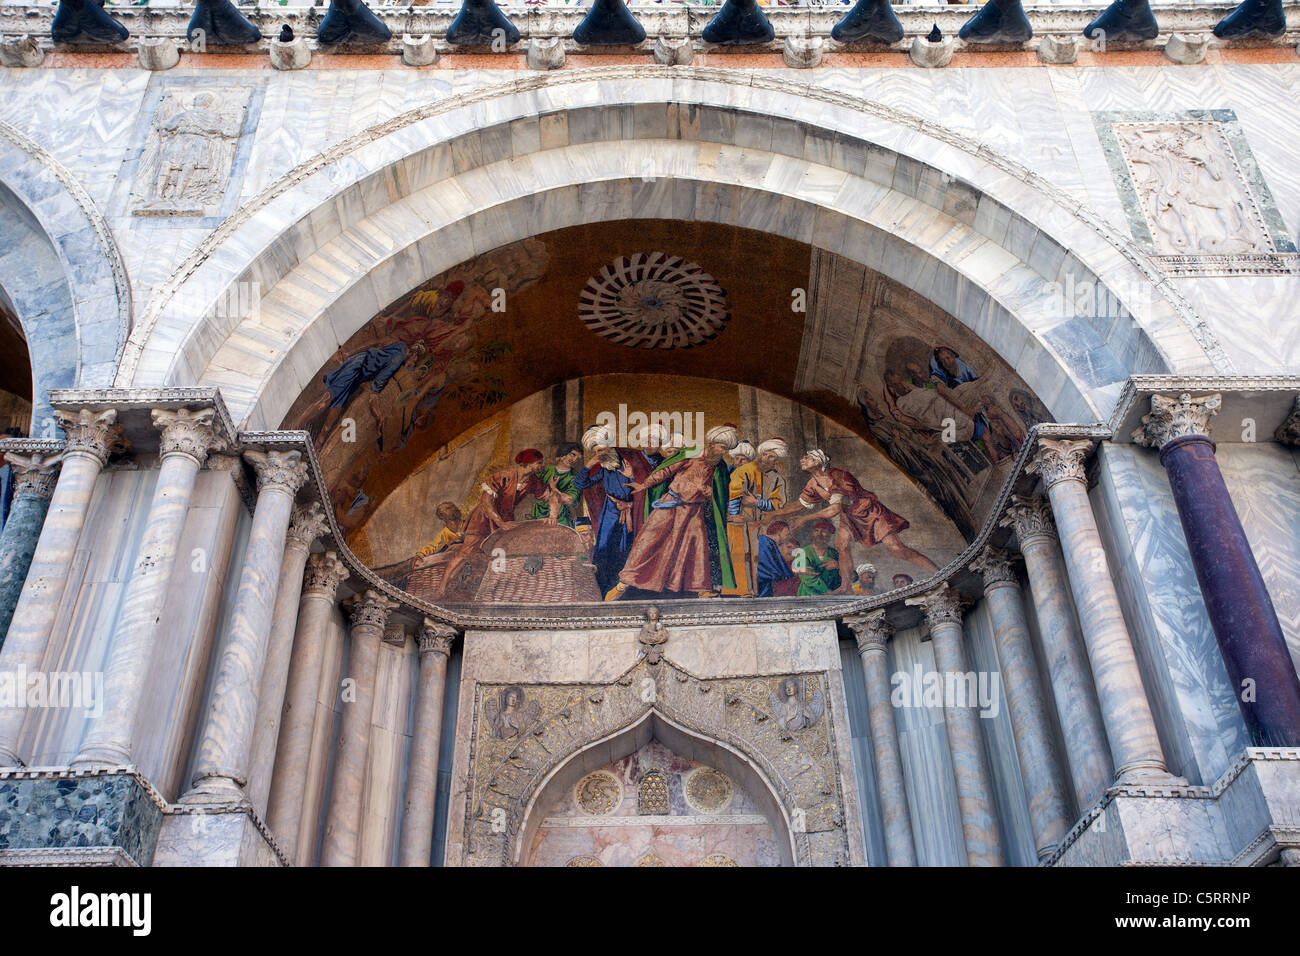 Arched mural, fresco painted on the entrance to St. Marks Cathedral ...